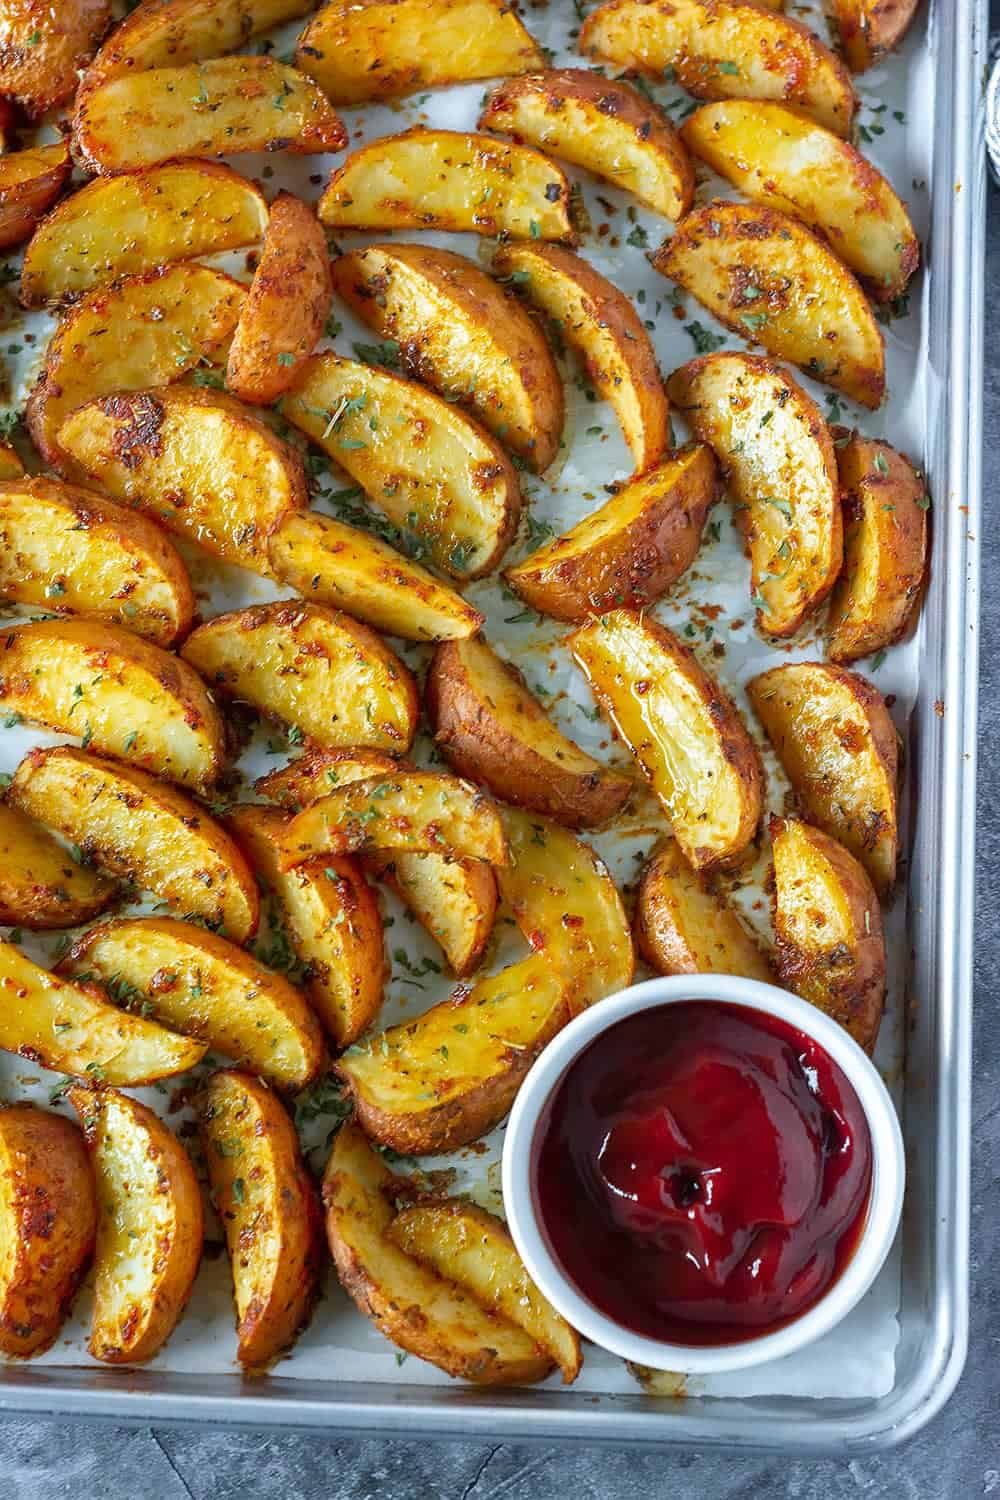 Cajun Oven Baked Potato Wedges